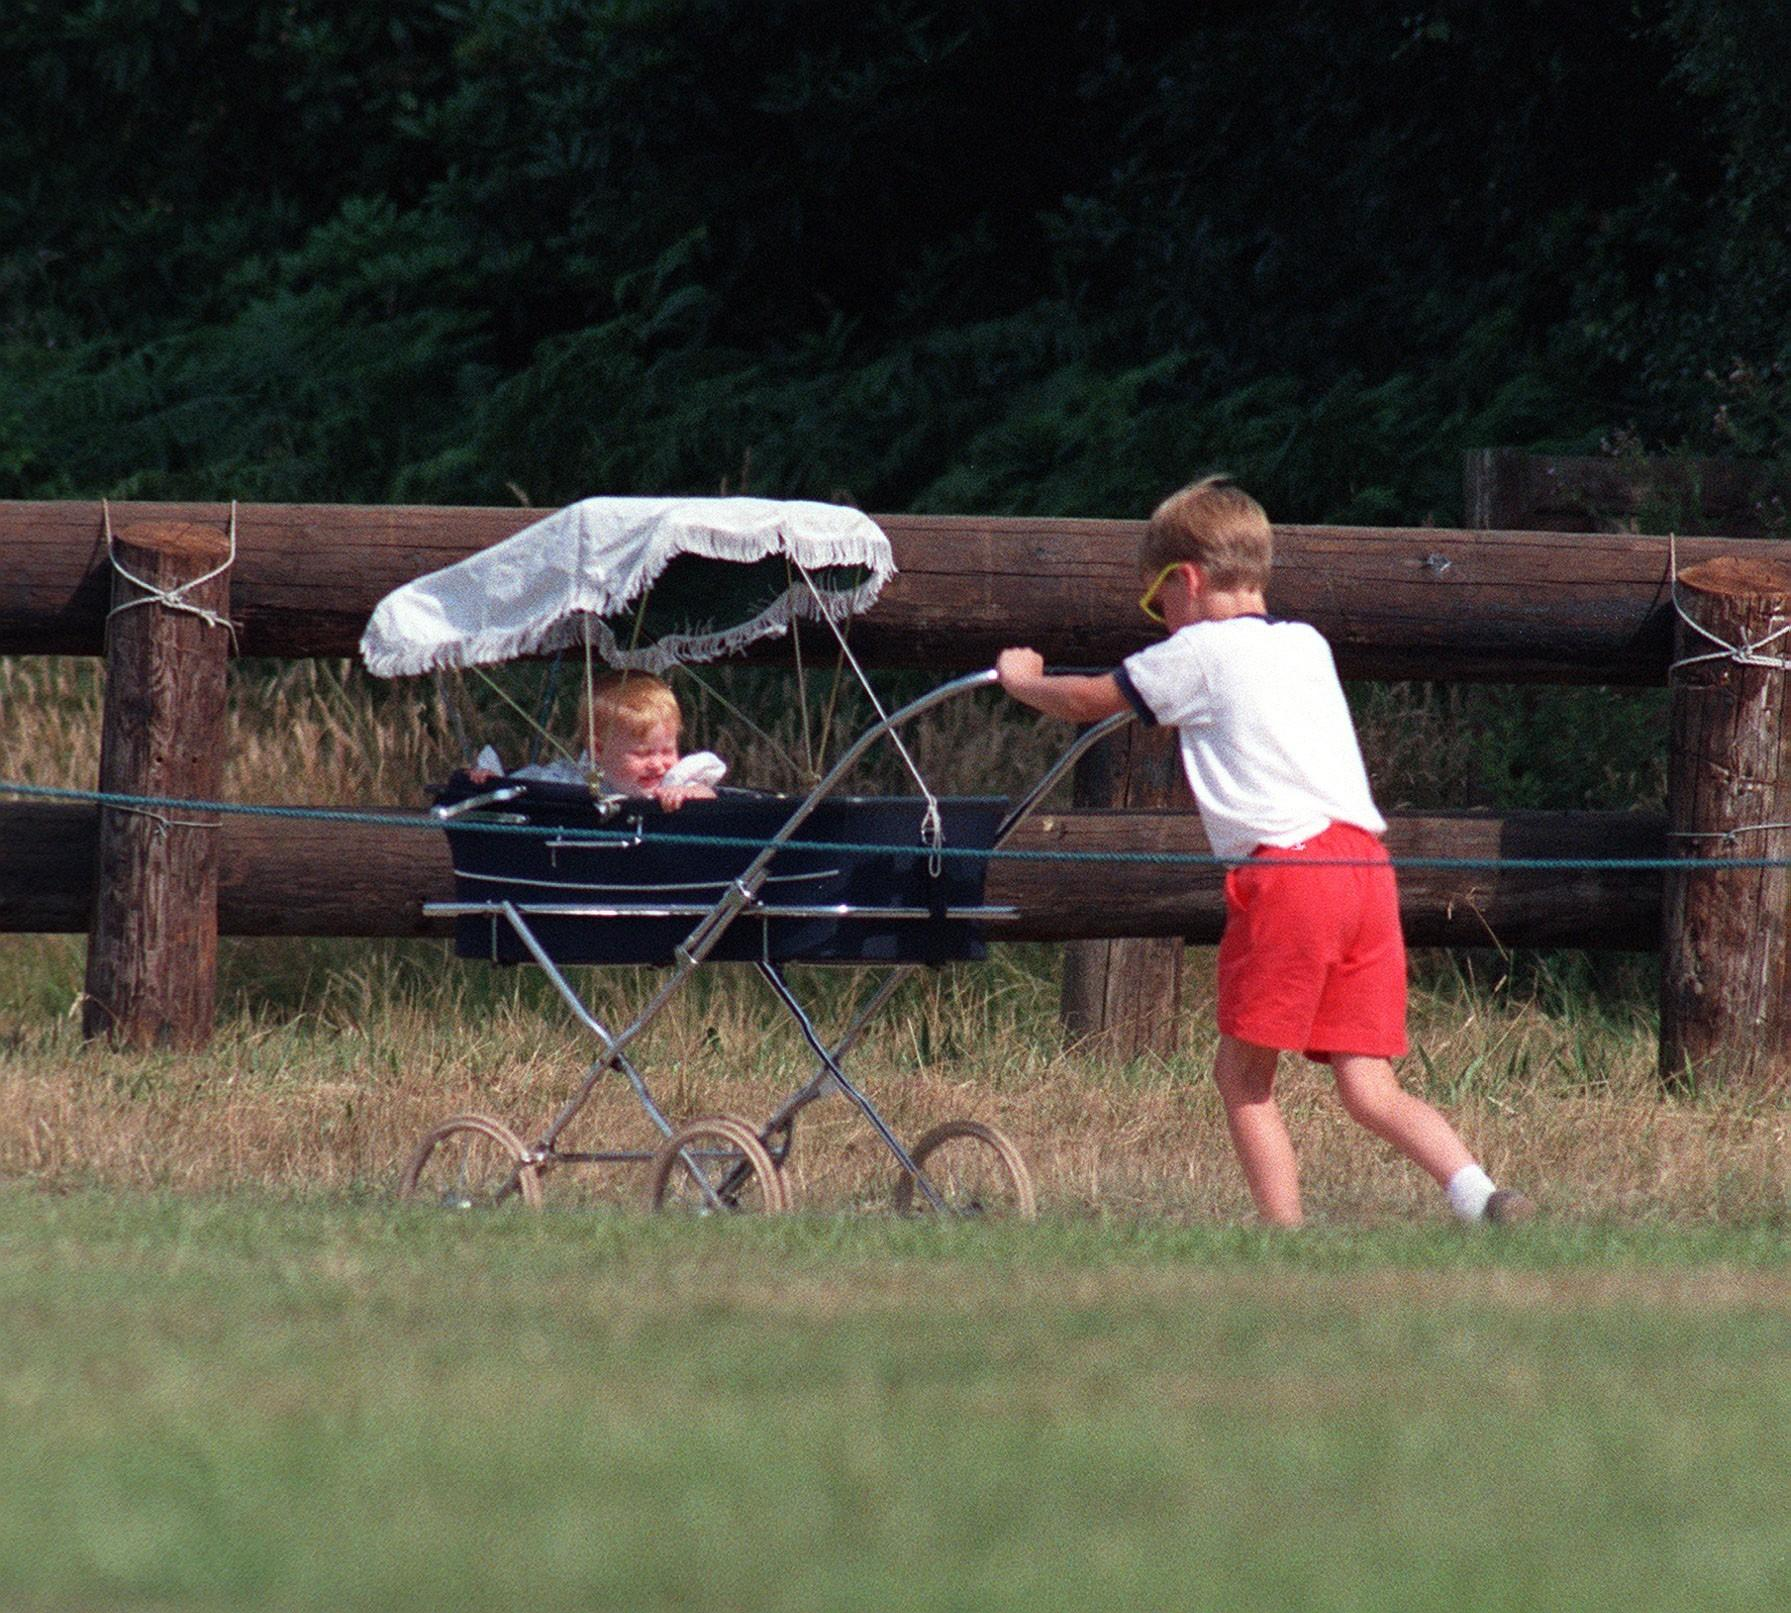 Prince William Collection 1989 Prince William pushing Princess Beatrice in pram, July 1989 Princess Beatrice in pram being pushed by her cousin Prince William. (Photo by Dennis James /Mirrorpix/Getty Images)